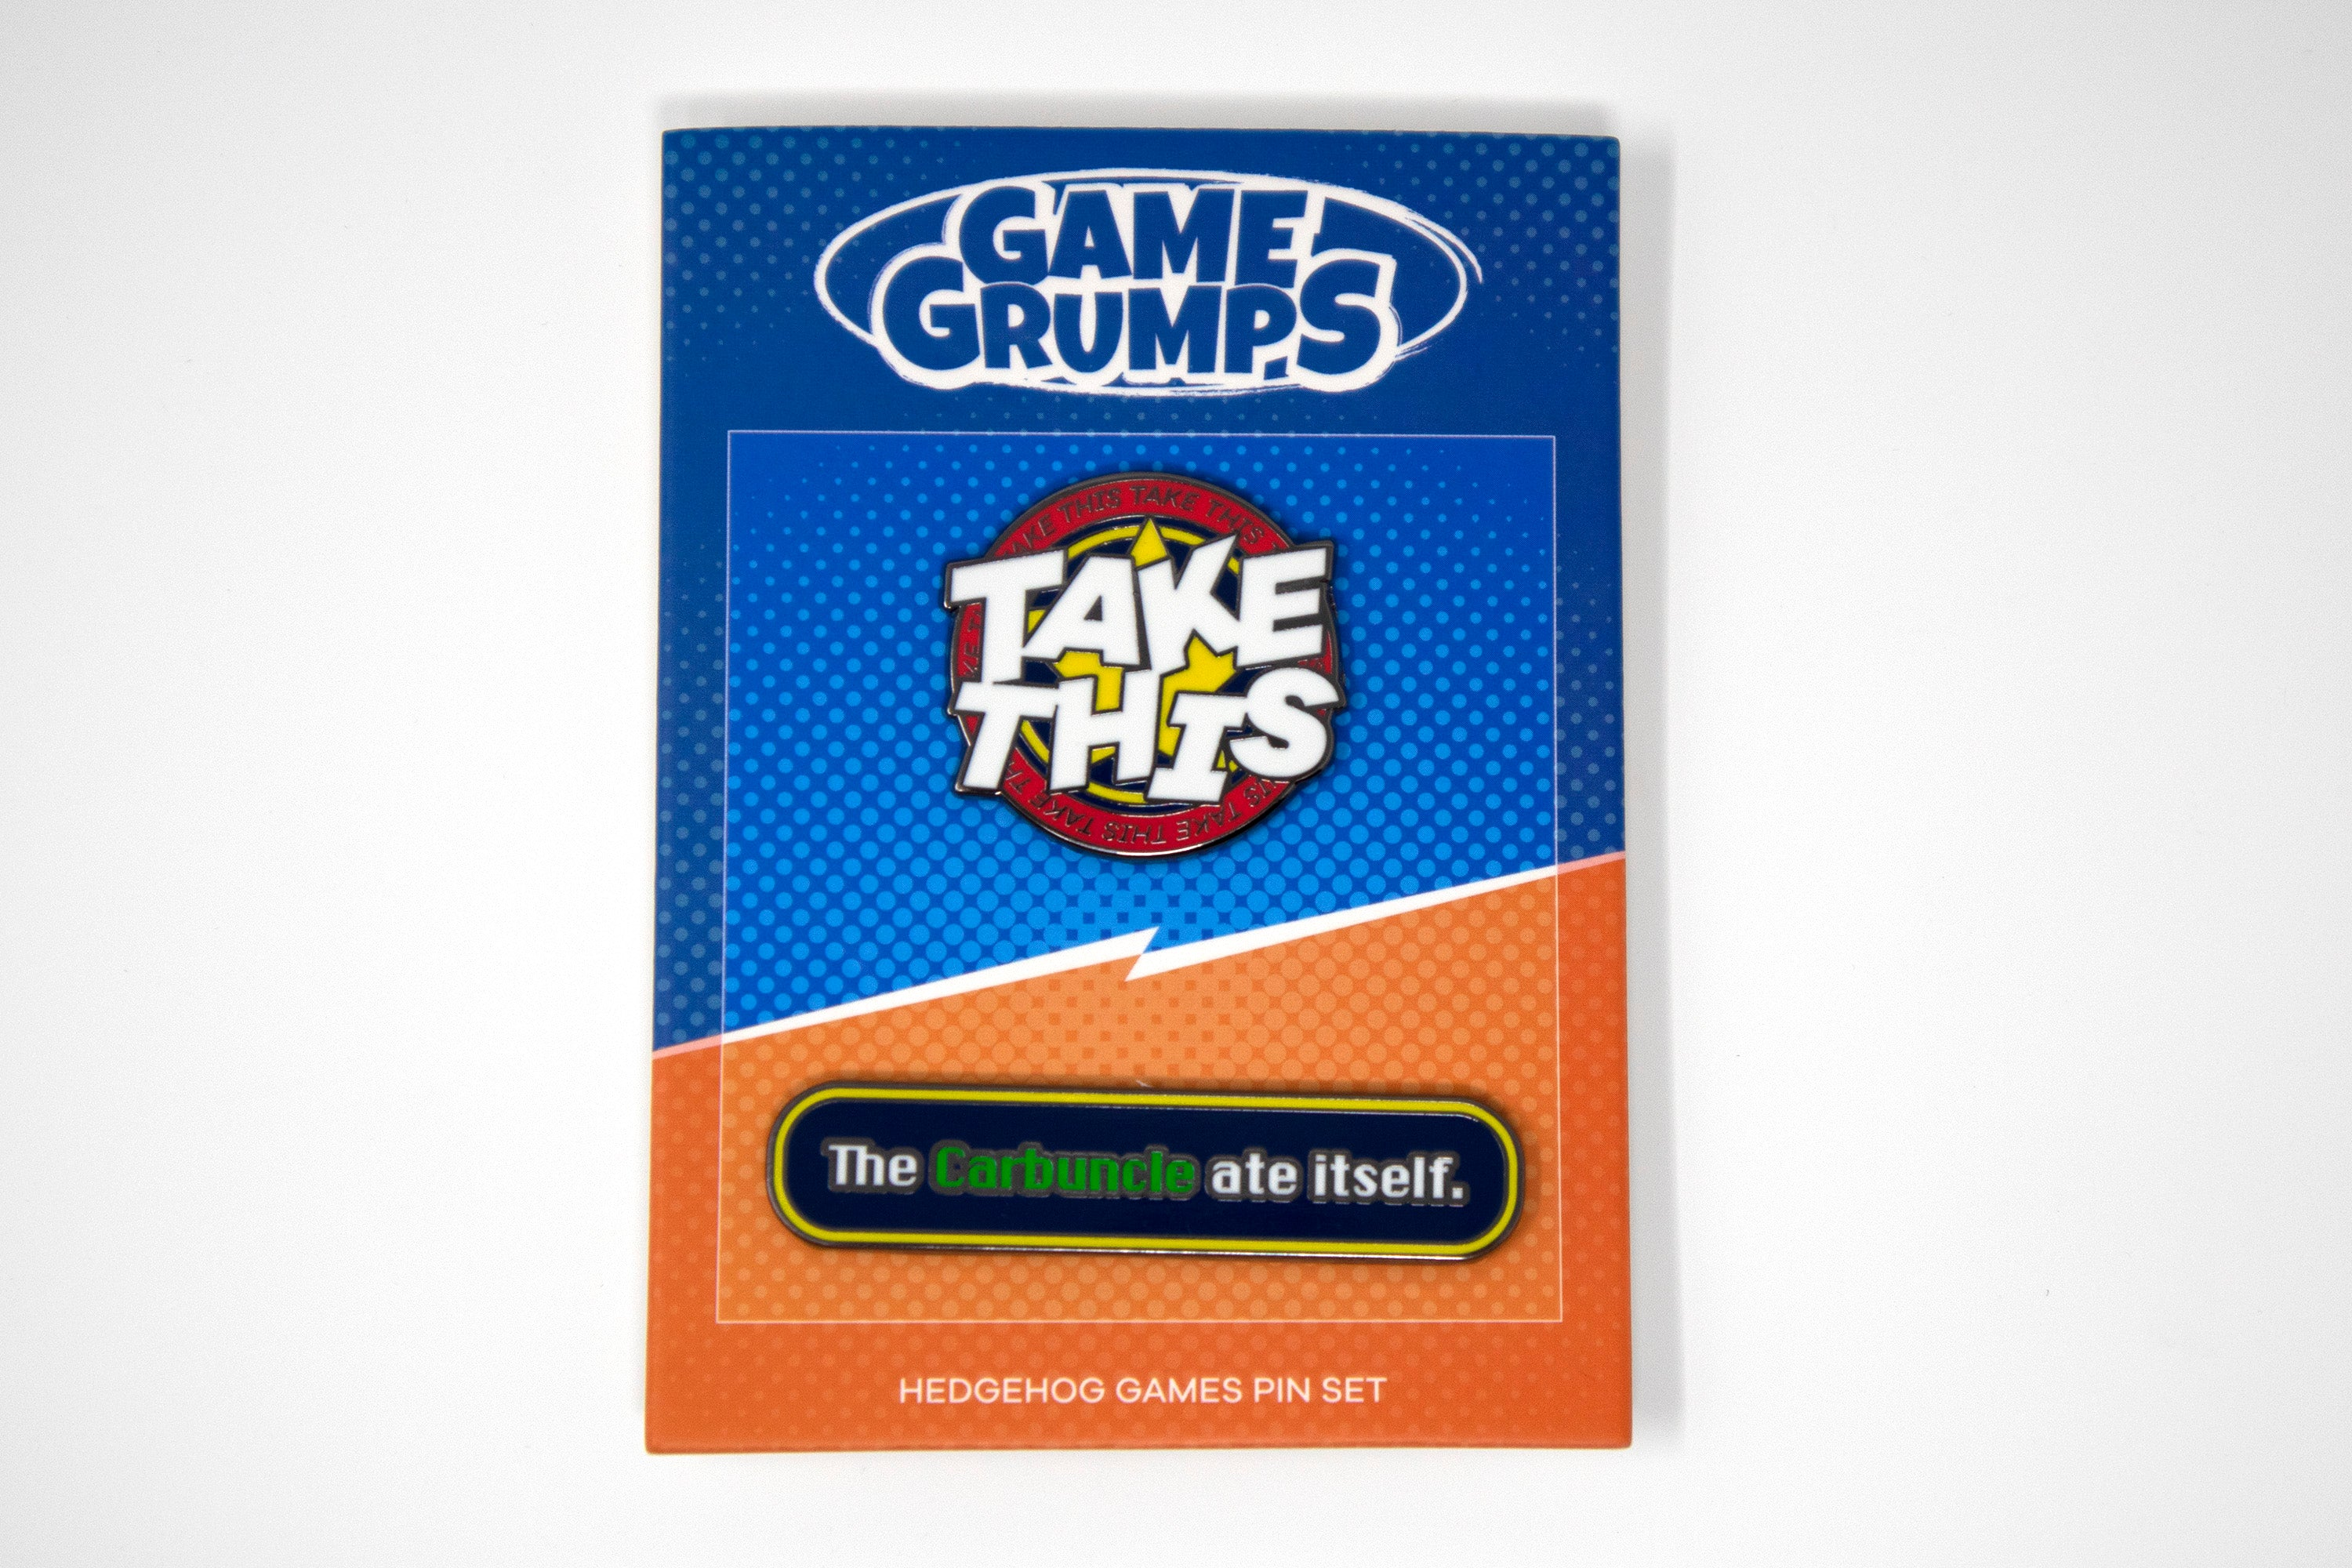 Game Grumps - Hedgehog Games Pin Set